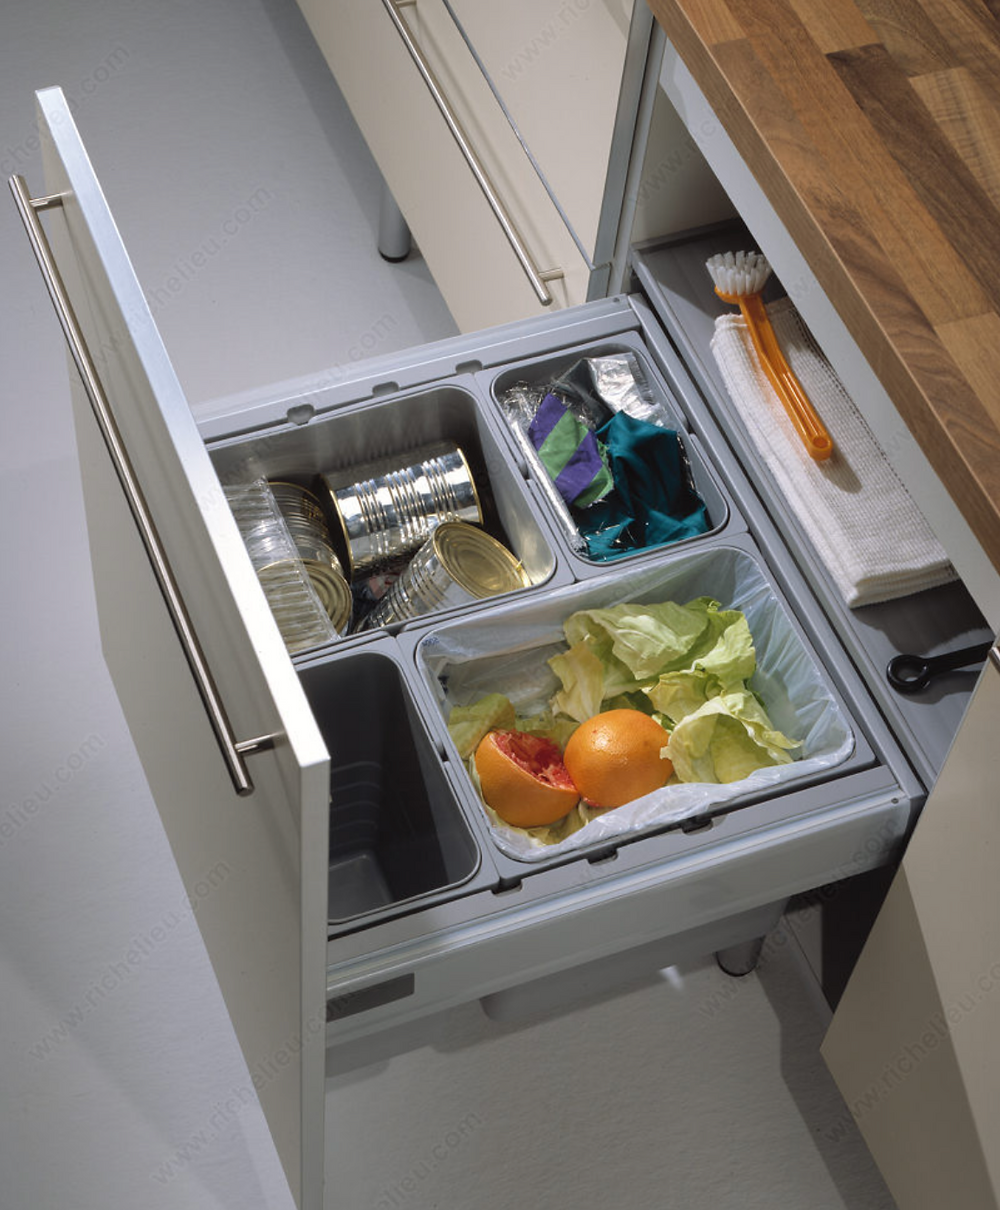 Kitchen Pull-out of compost and recycling bins.